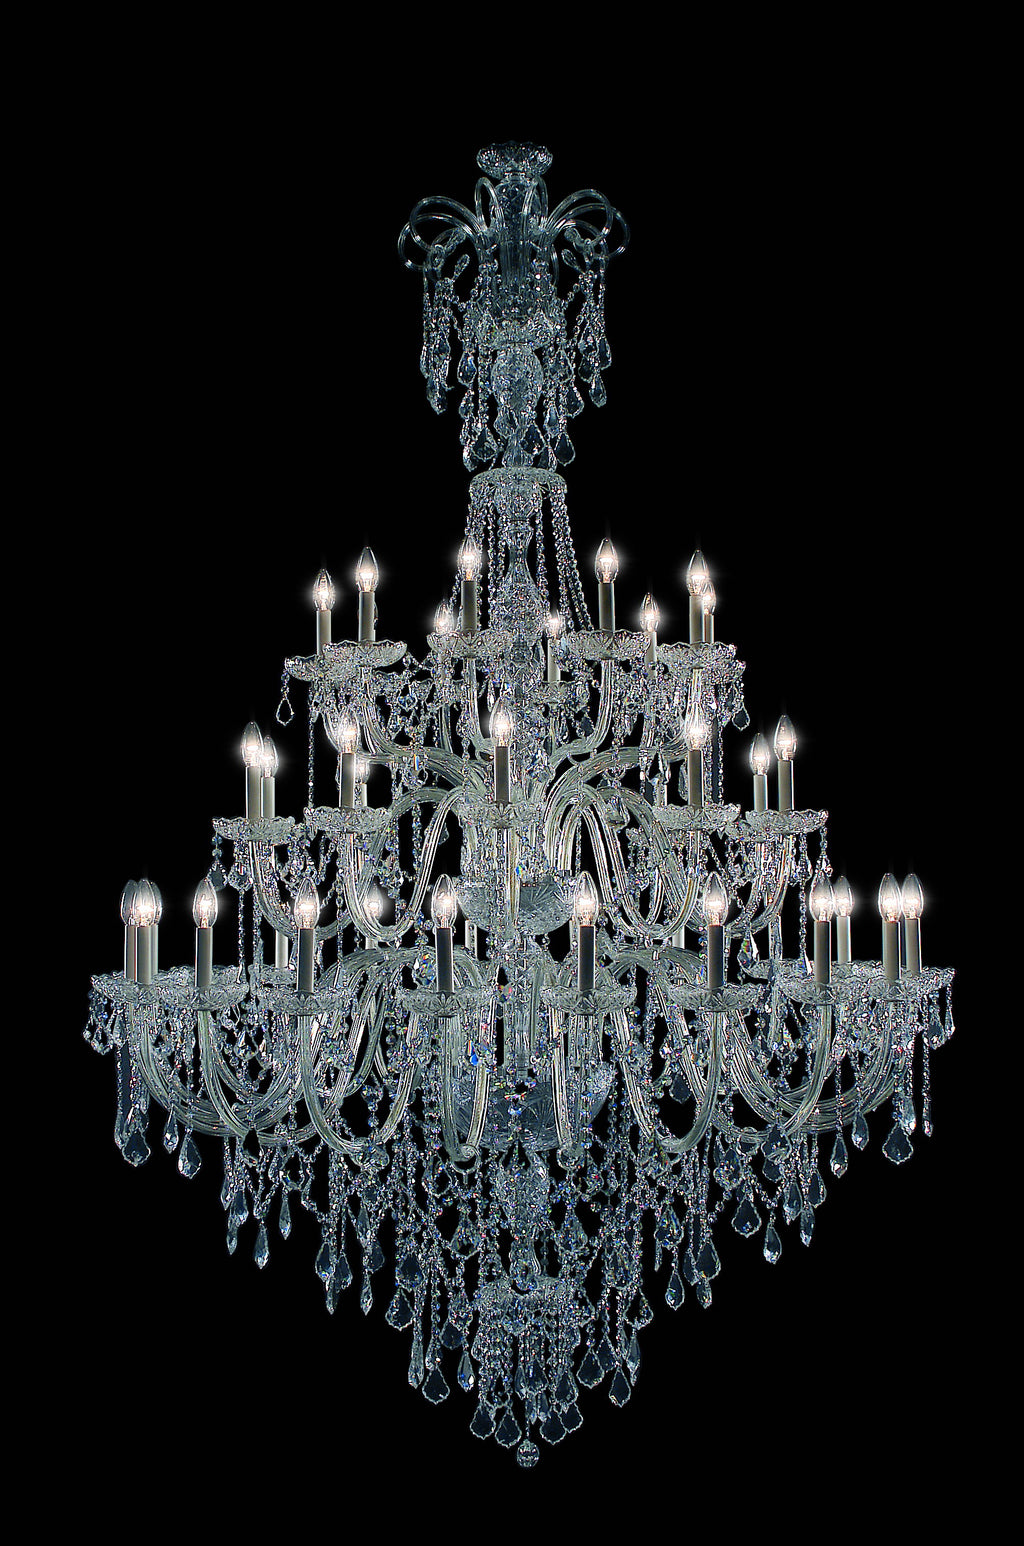 Richmond Chandelier 40 Light - David Malik & Son